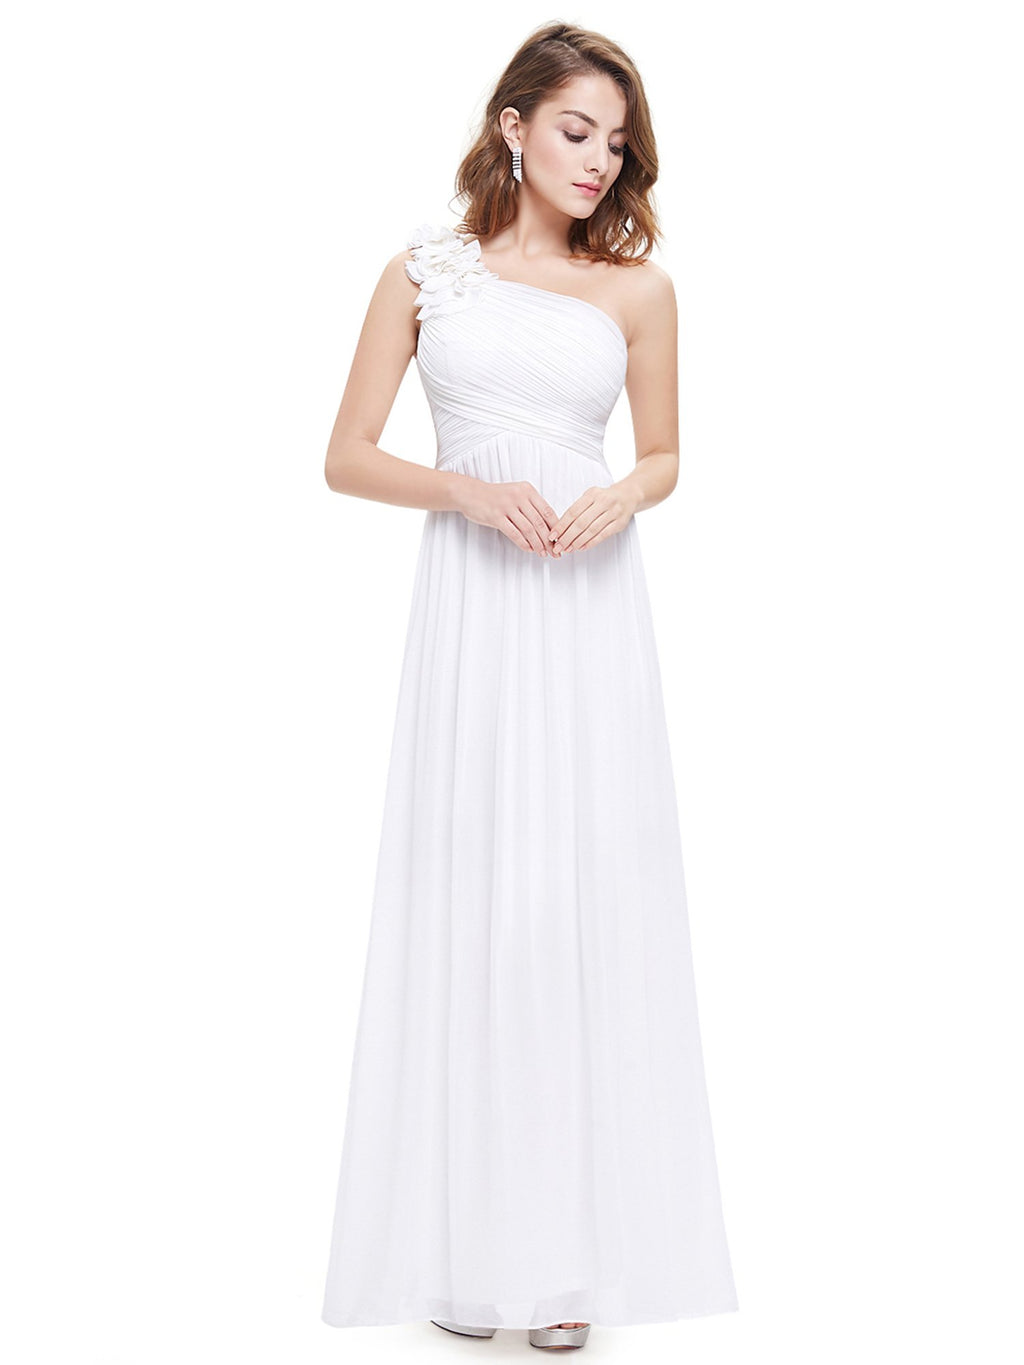 Floral Shoulder One Shoulder Evening Dress White